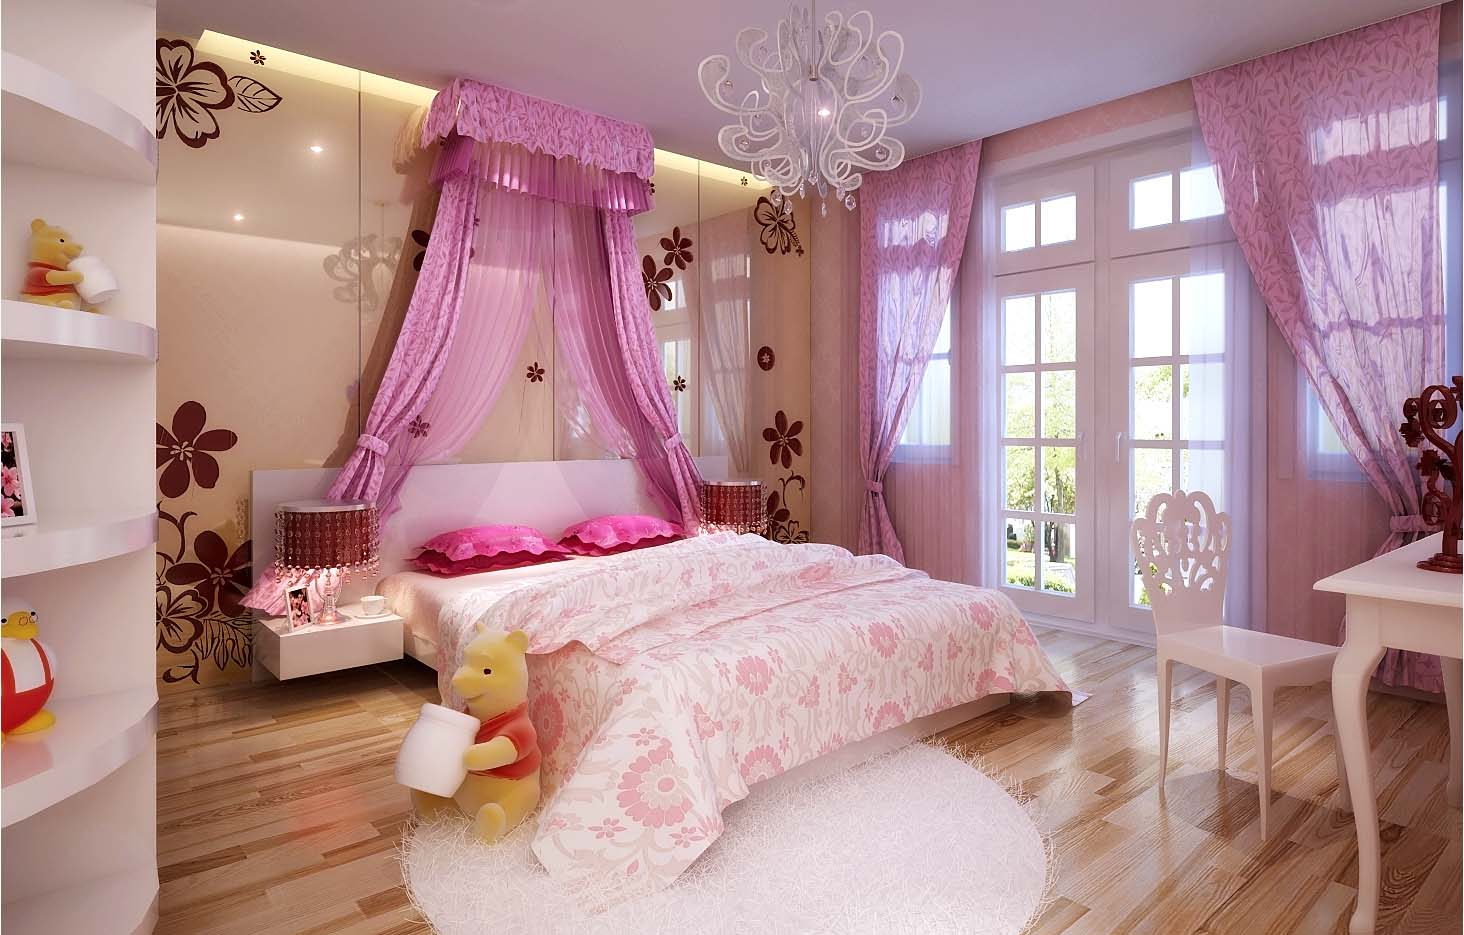 Big Bedrooms For Girls. Big Bedrooms For Girls Inspiration Luxurious Bedroom  With Bed Fully Furnished